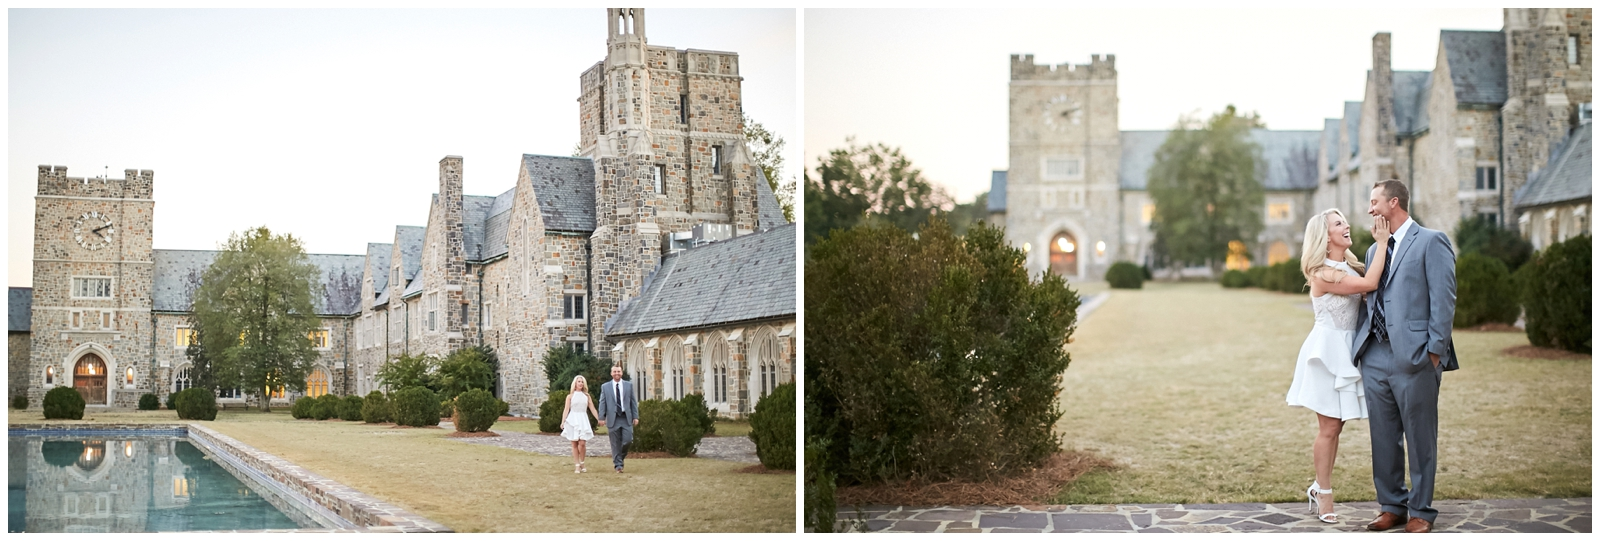 amandawes_berry-college-engagement_0017